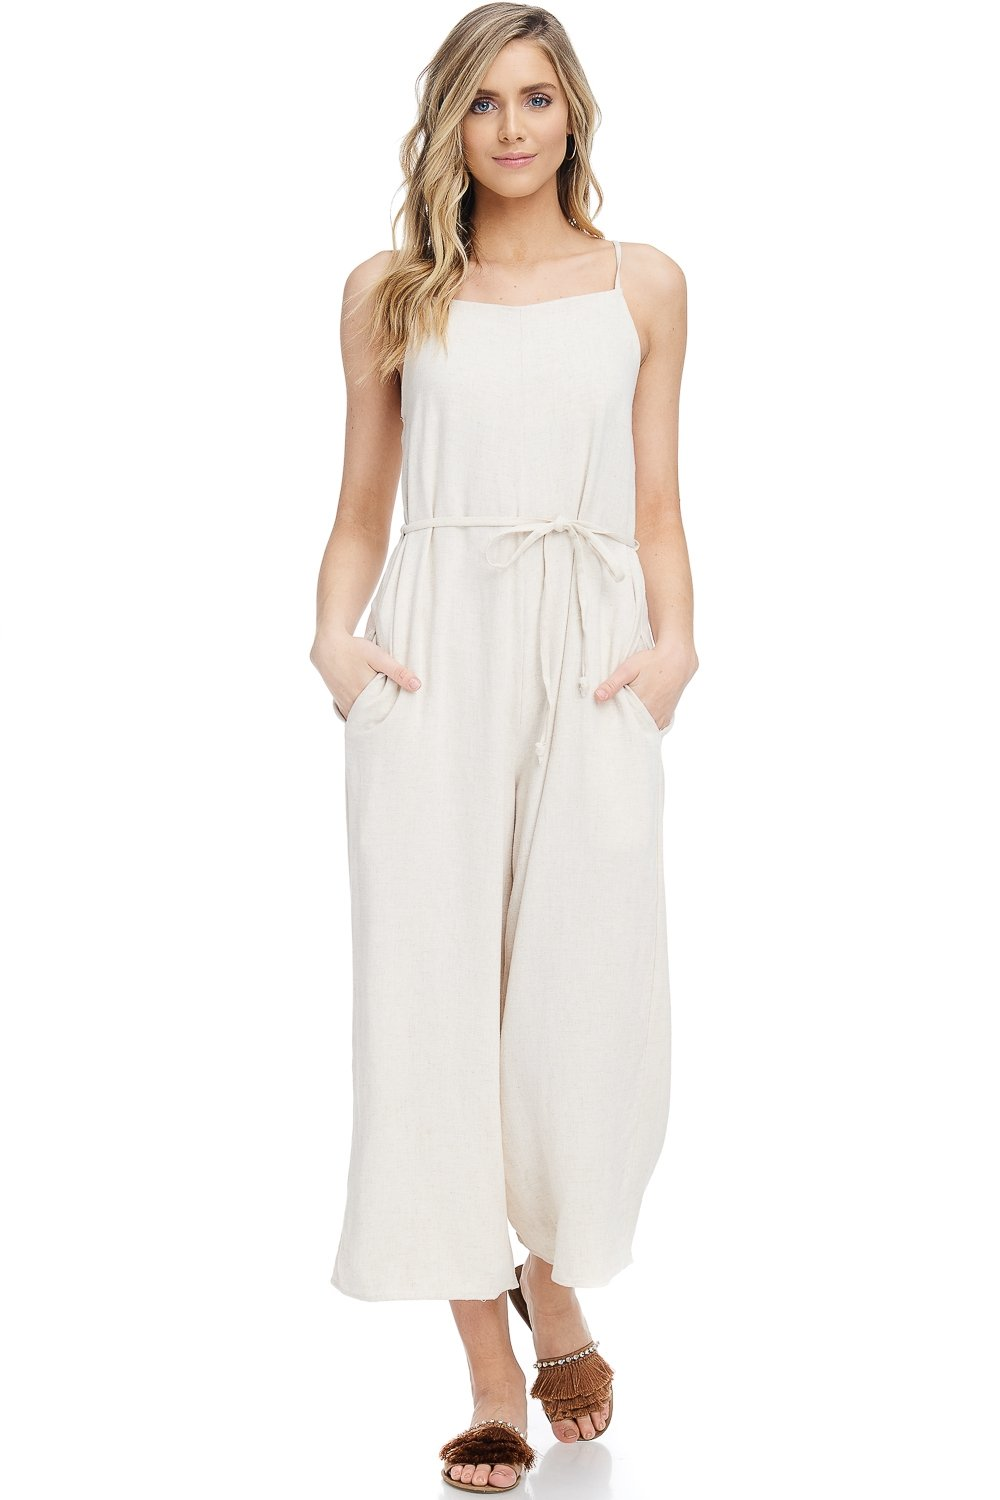 56a1c20f4d41 A+D Womens Casual Linen Spaghetti Strap Sexy Jumpsuit Rompers product image